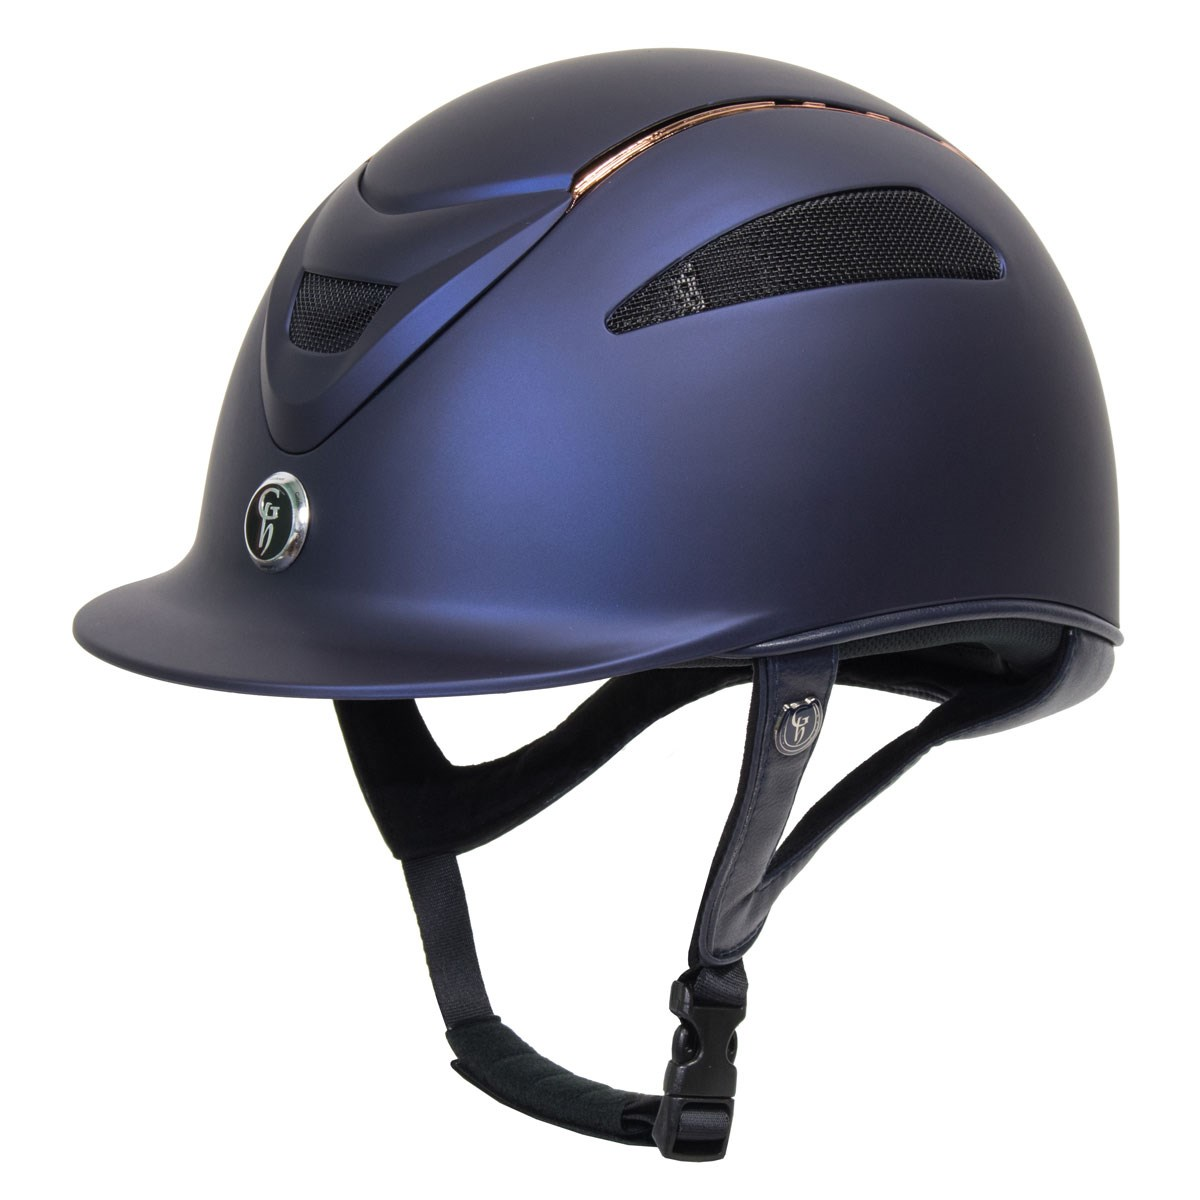 Gatehouse Conquest MK2 Rose Gold Limited Edition Riding Hat